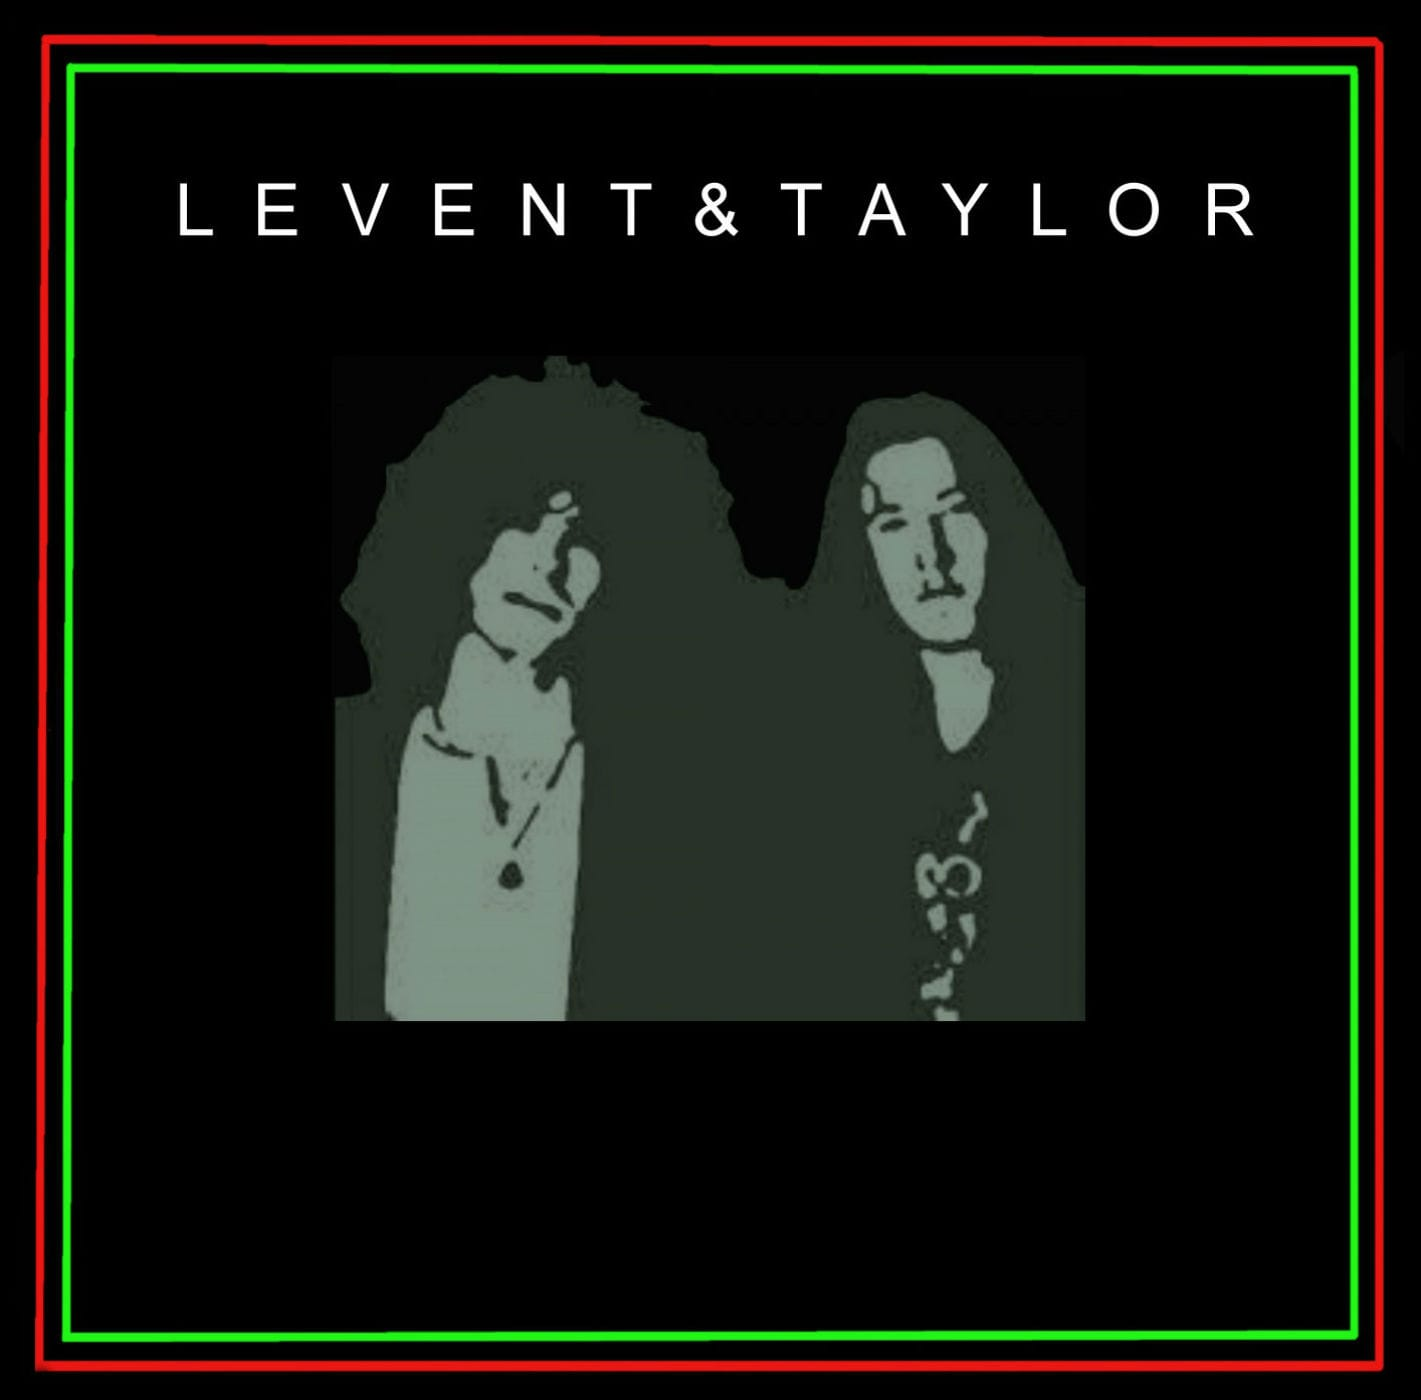 levent & taylors new album